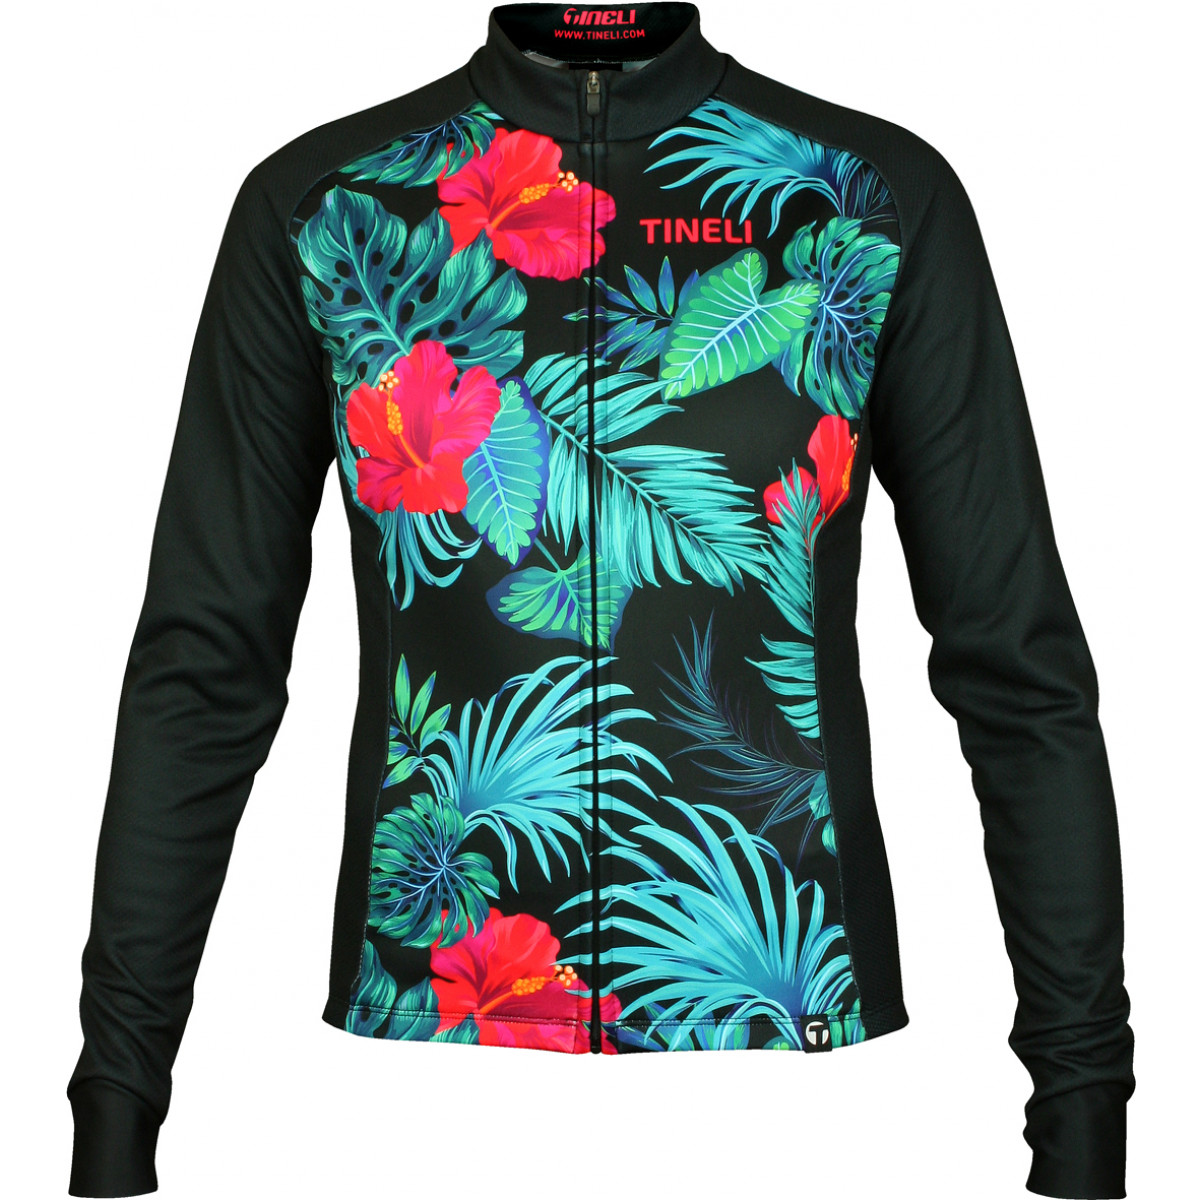 459 tropical intermediate cutout Tropical Intermediate Jacket